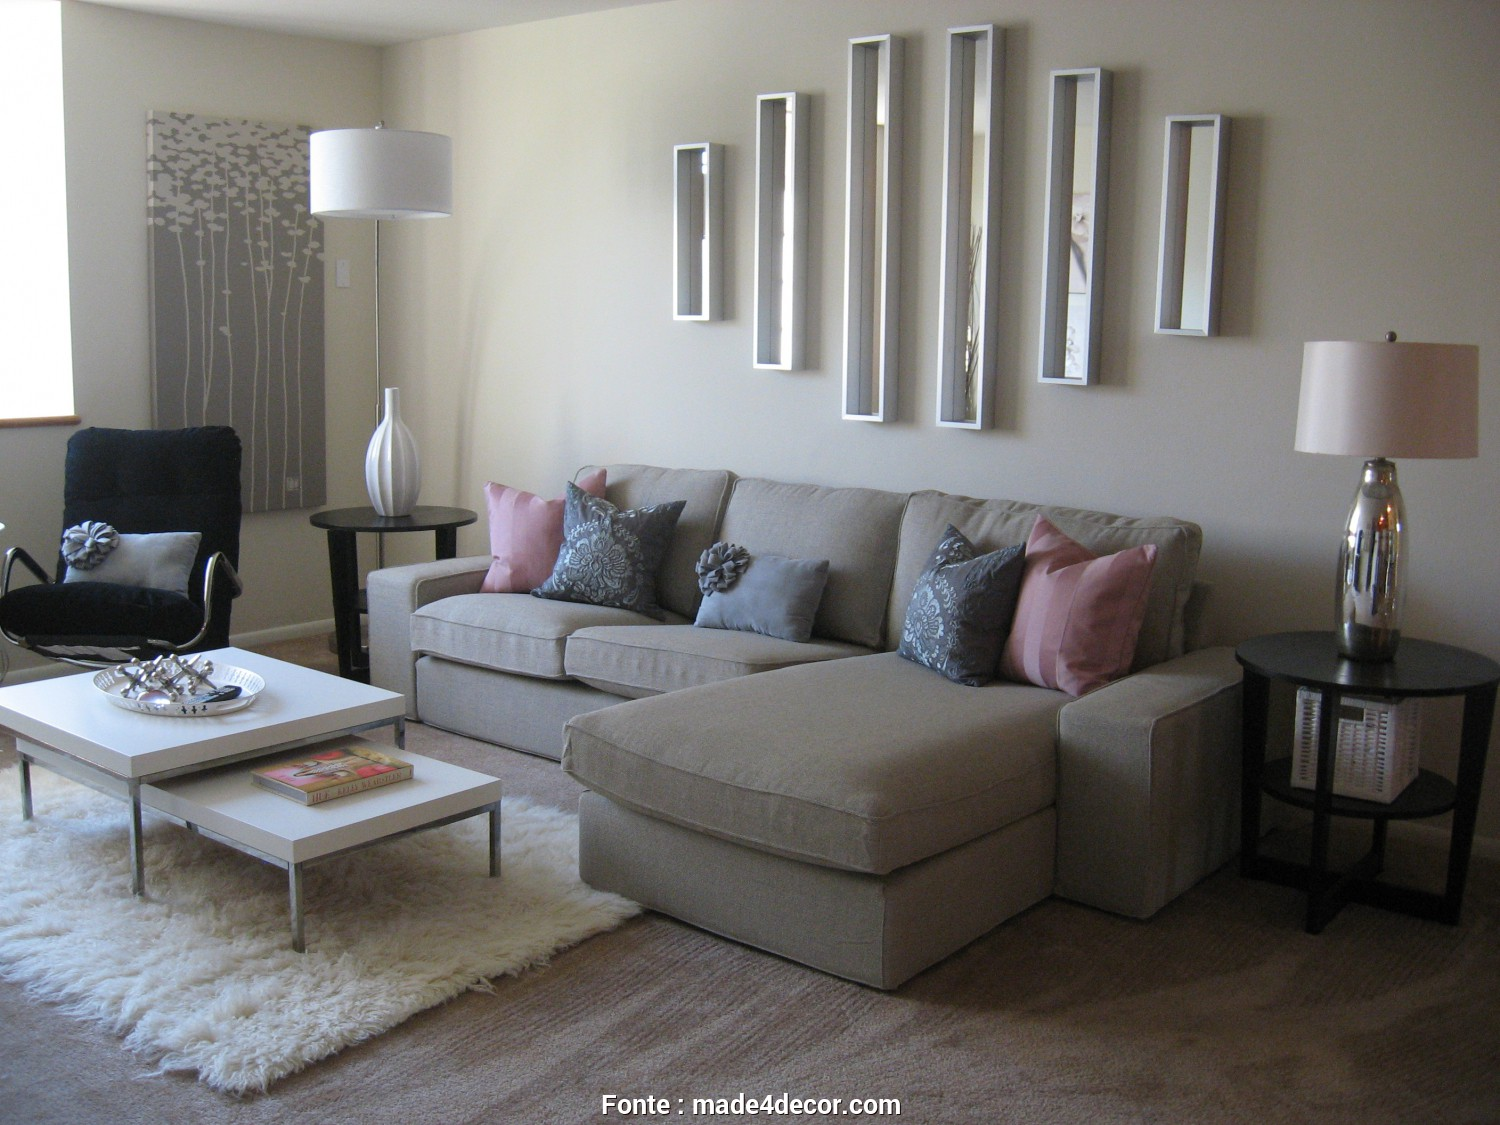 Ikea Online Backabro, Deale Furniture. Interesting Sectional Sofas Ikea Ideas, Made 4 Decor